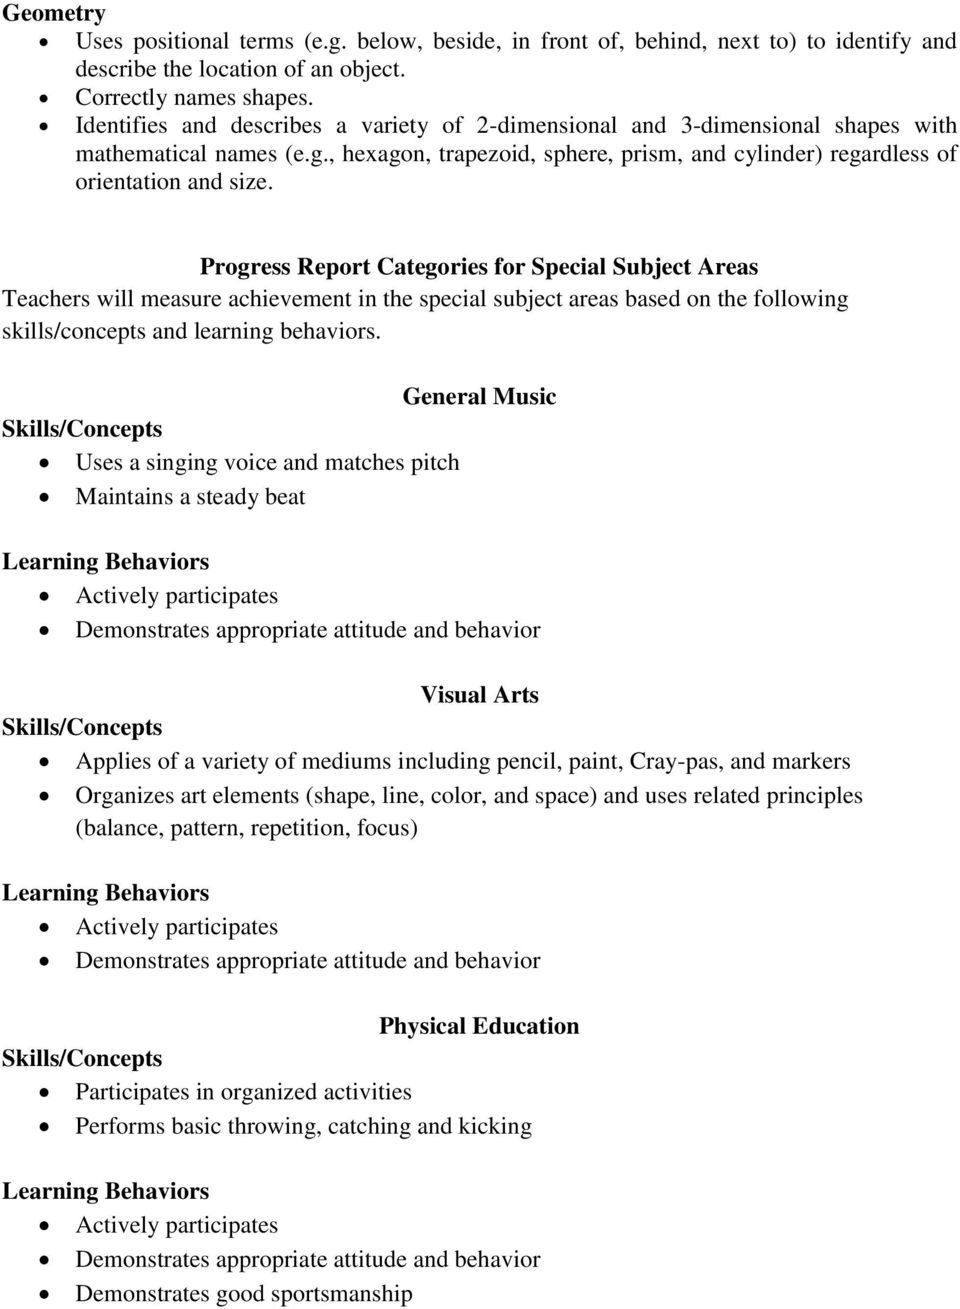 Progress Report Categories for Special Subject Areas Teachers will measure achievement in the special subject areas based on the following skills/concepts and learning behaviors.